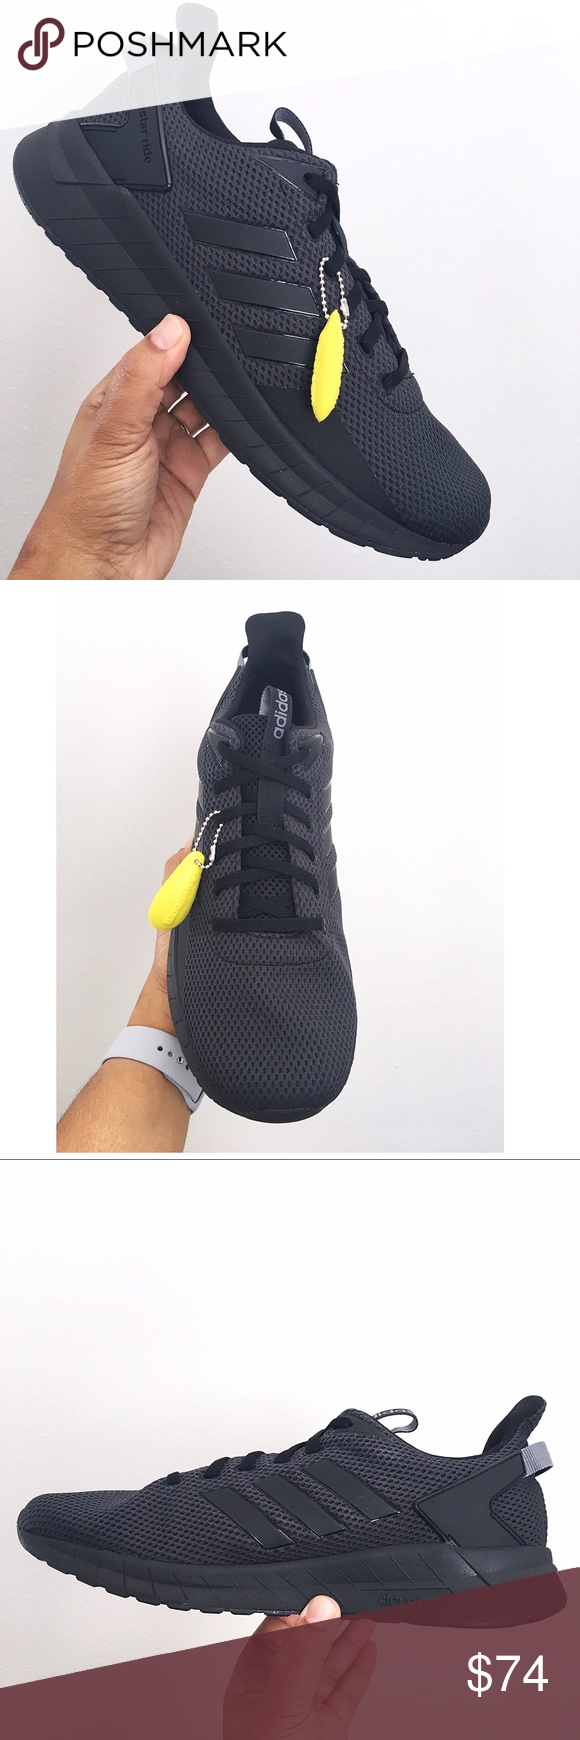 best website 9a630 3450a Adidas Mwns Questar Ride Black Running Shoes Brand new in Box with lid Adidas  B44806 - Cloudfoam midsole - Sockliner - Upper Mesh adidas Shoes Athletic  ...